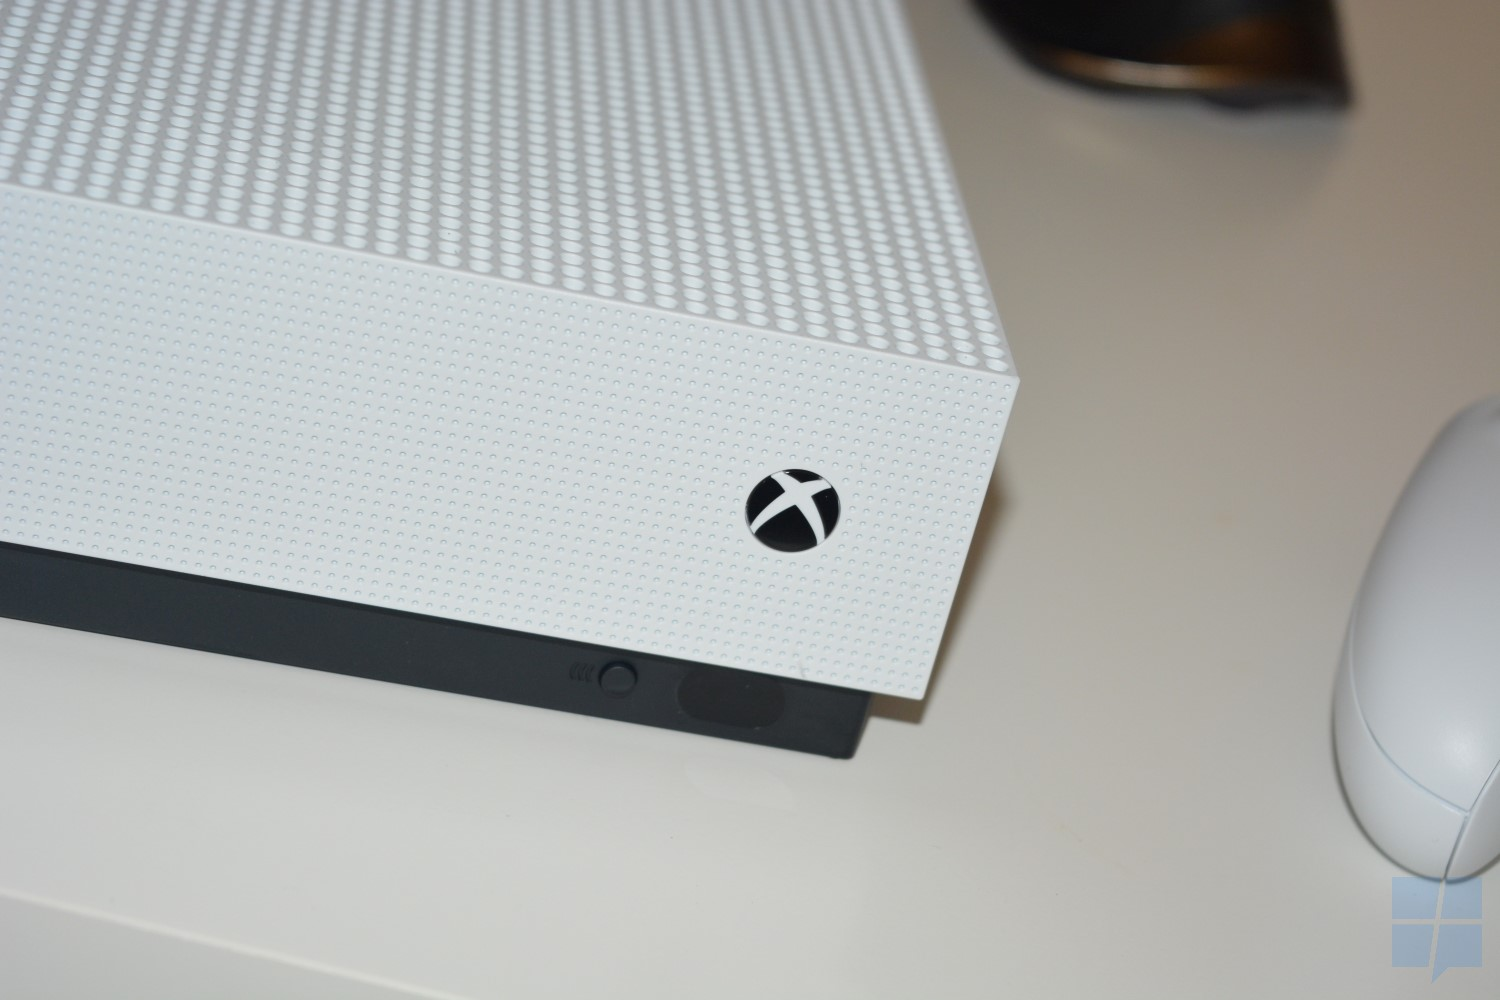 xbox-one-s-front-2